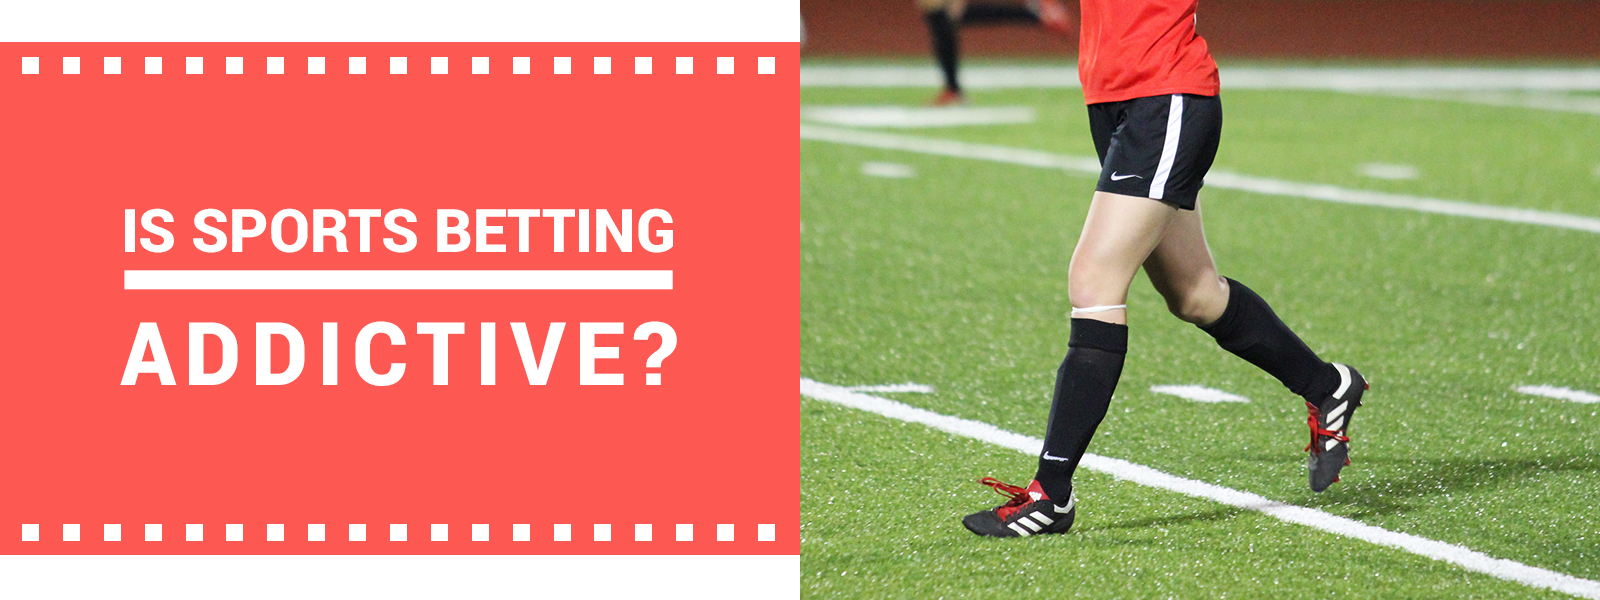 SoccerTipsters Blog | Is Sports Betting Addictive?